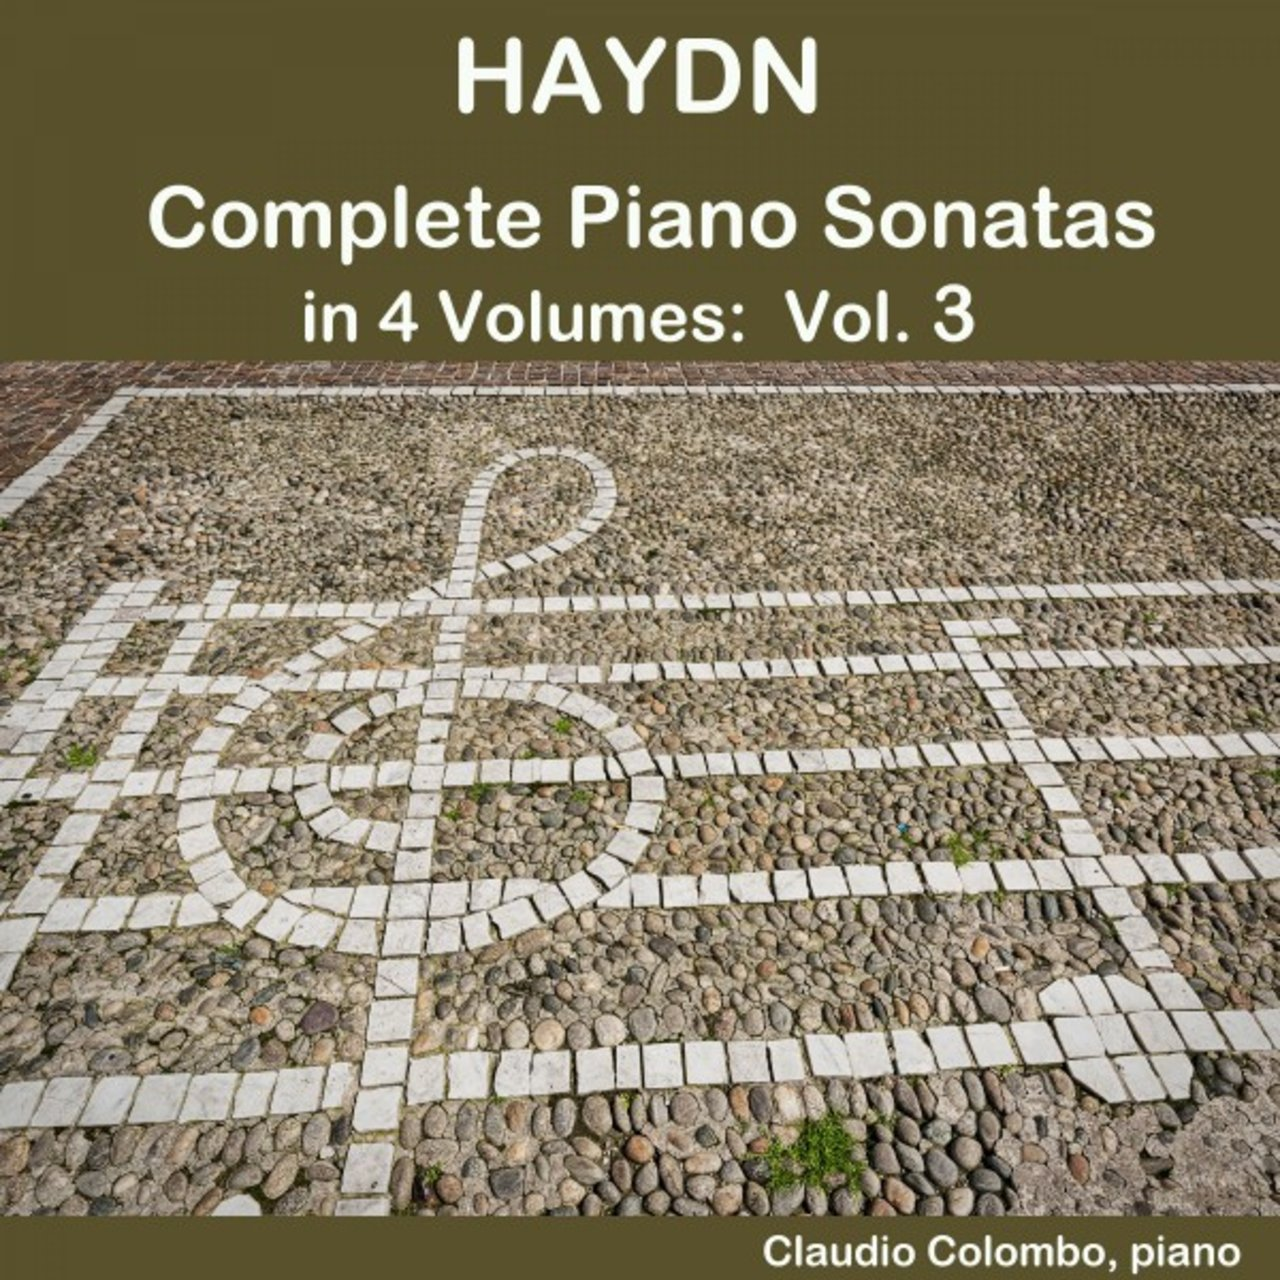 Haydn: Complete Piano Sonatas in 4 Volumes, Vol. 3